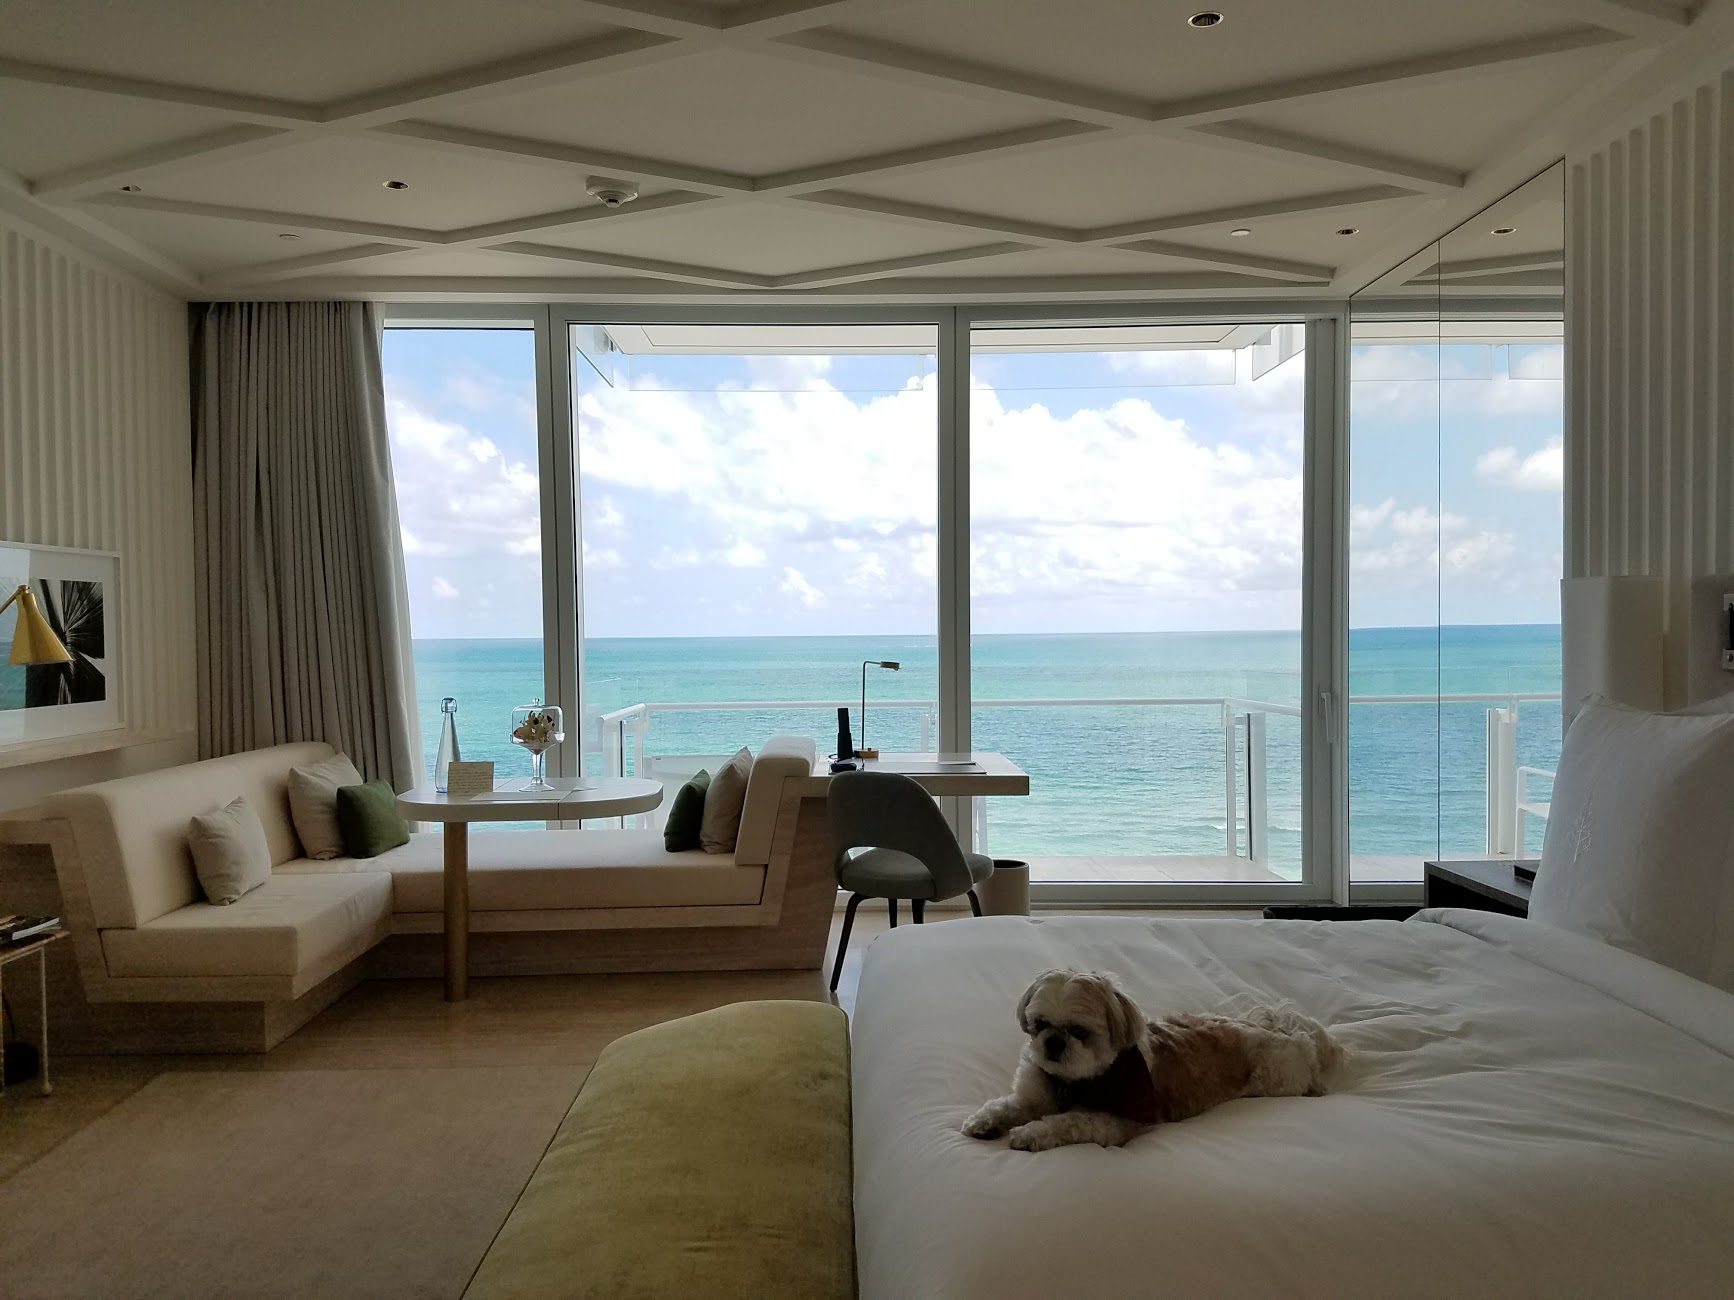 My sun-drenched room (I brought my pup, Ruby... the hotel is uber pet friendly!)